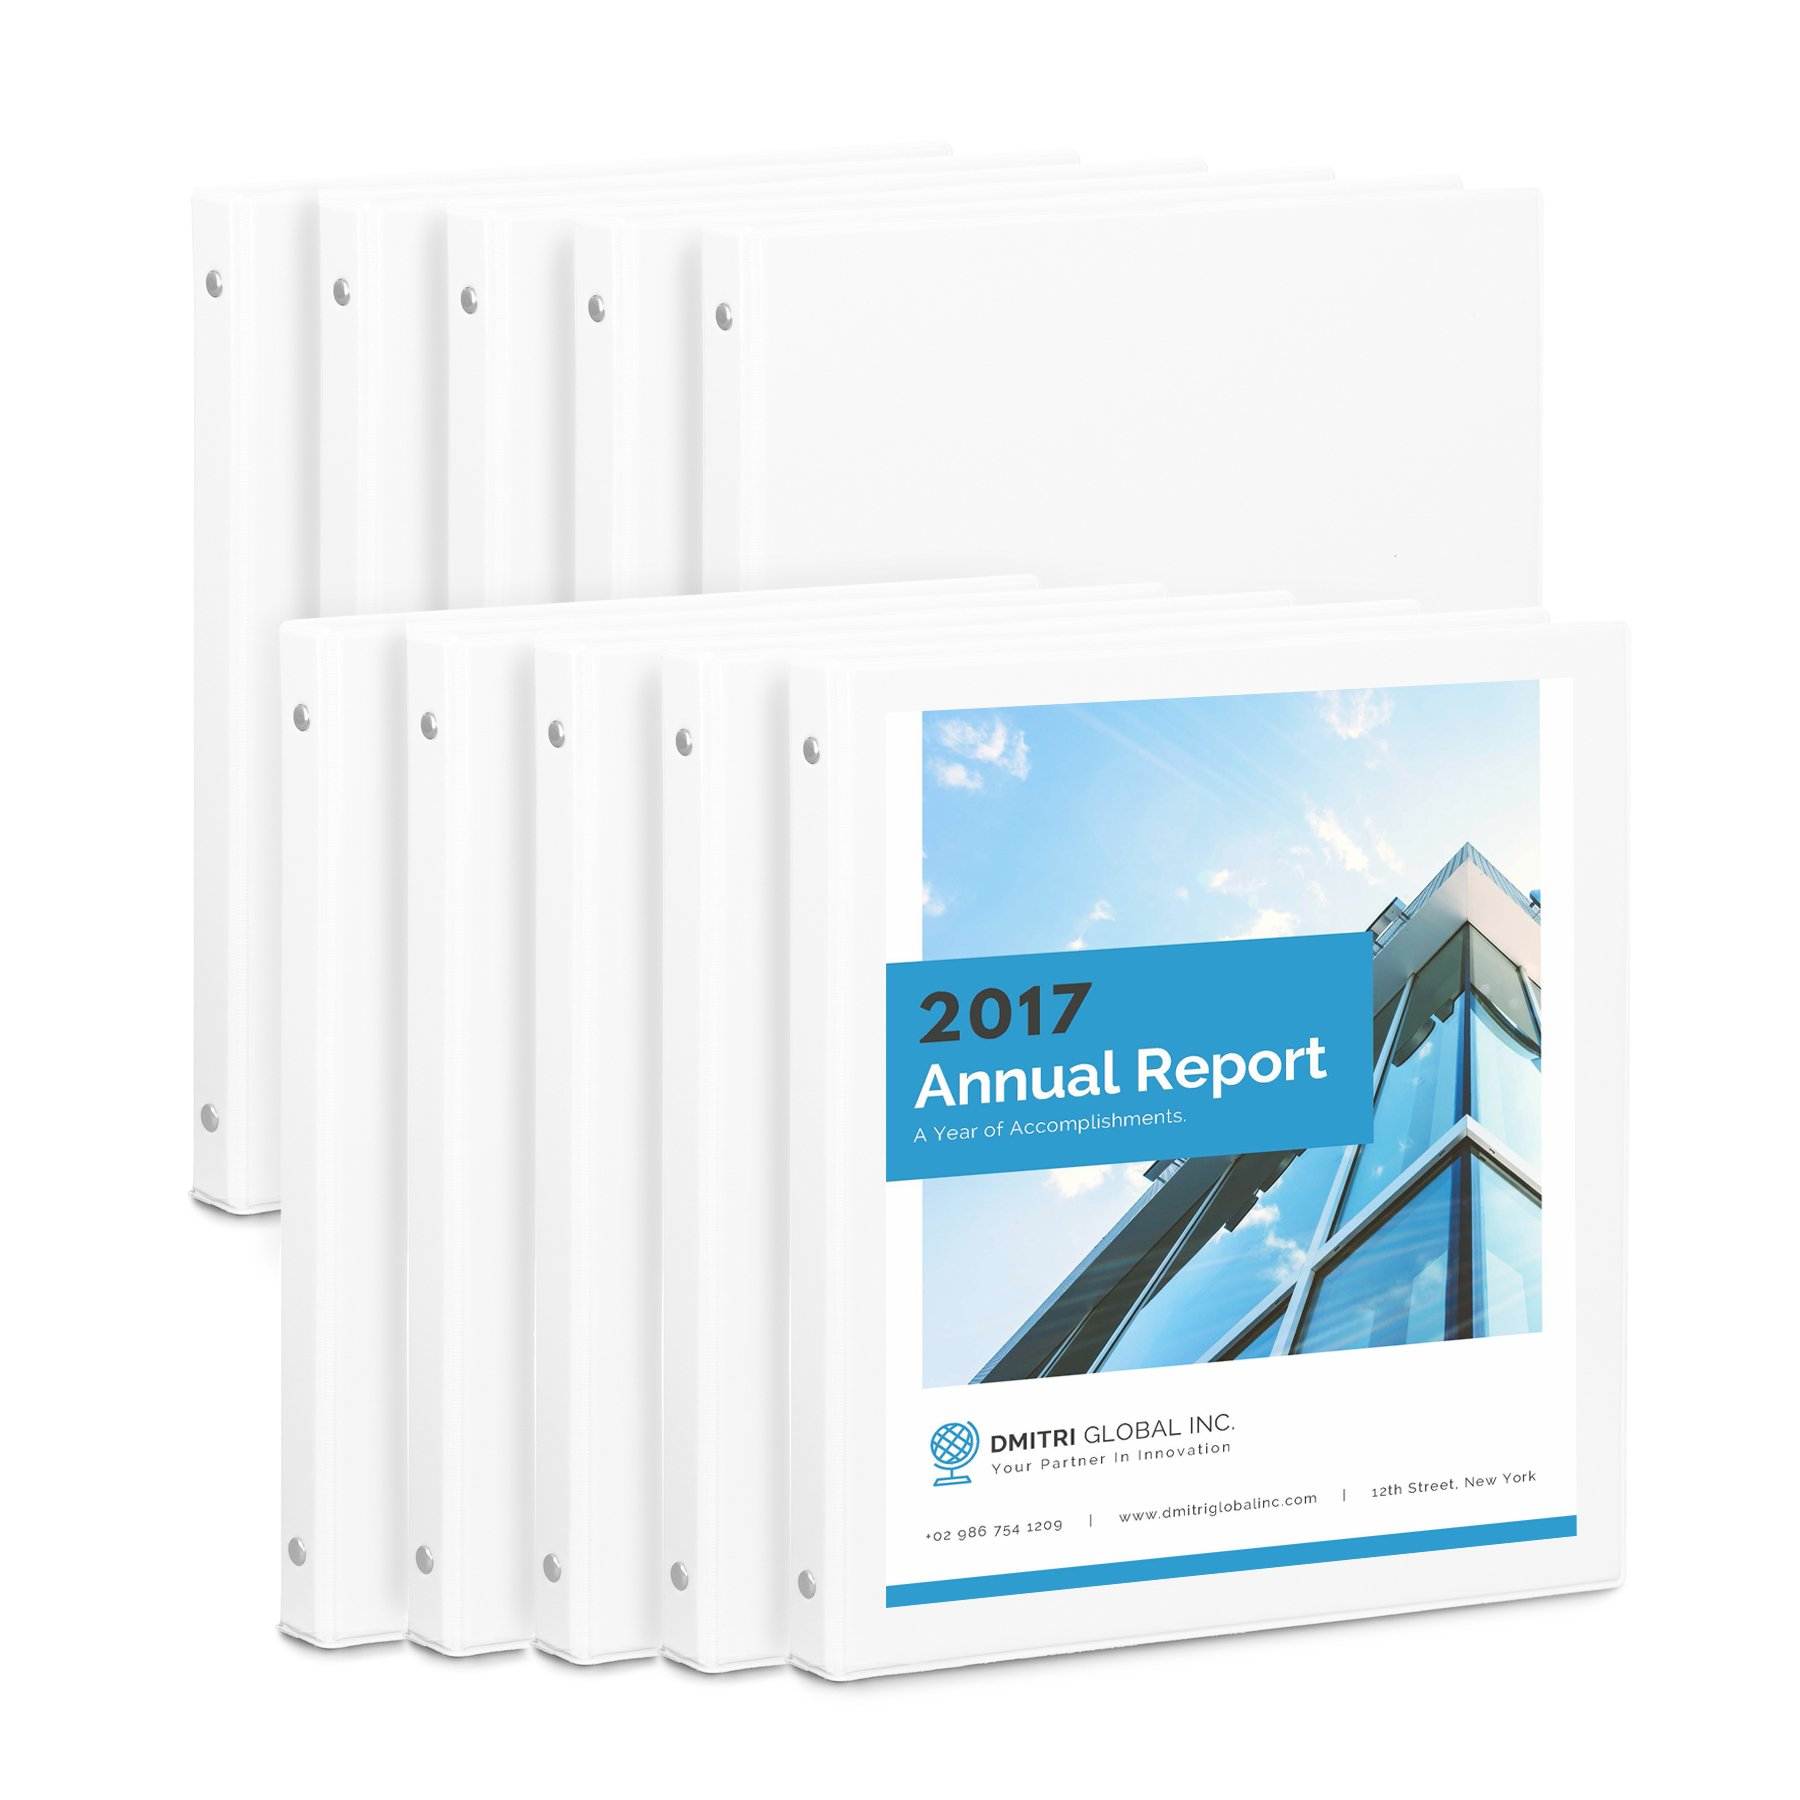 Blue Summit Supplies 10 Pack of 1/2 inch 3-Ring Economy Binders, White, Bulk Clear Cover Binders for Home, Office, and School, 8 1/2 inch x 11 inch Paper, Value Pack